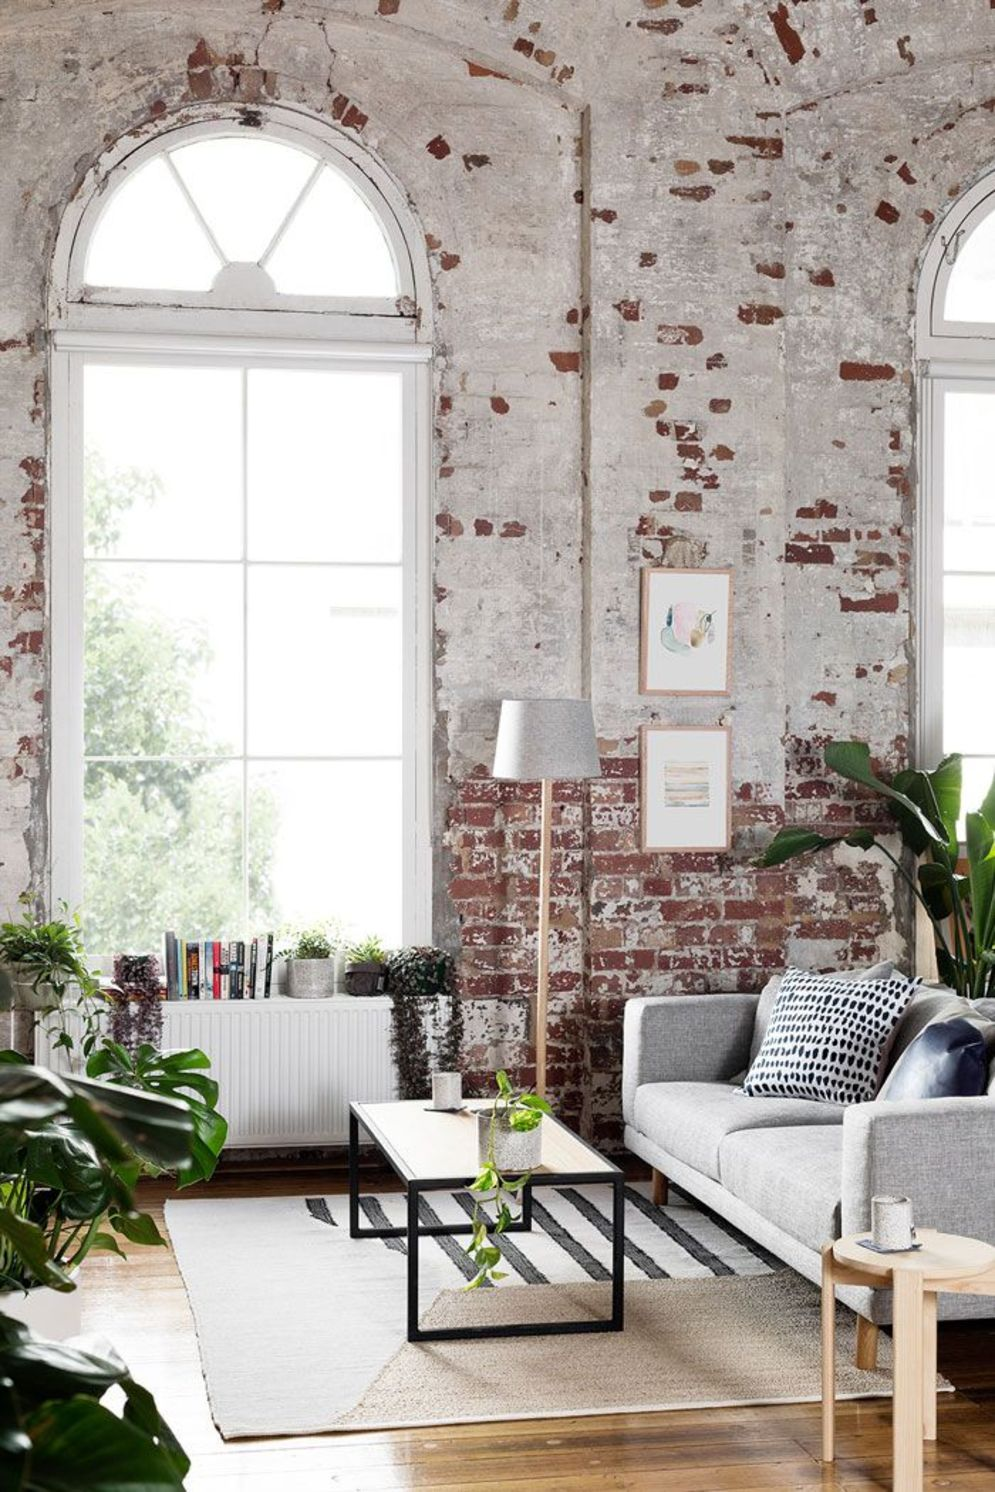 Wonderful interior statement brick wall improving interior display with modern rustic combination Image 25